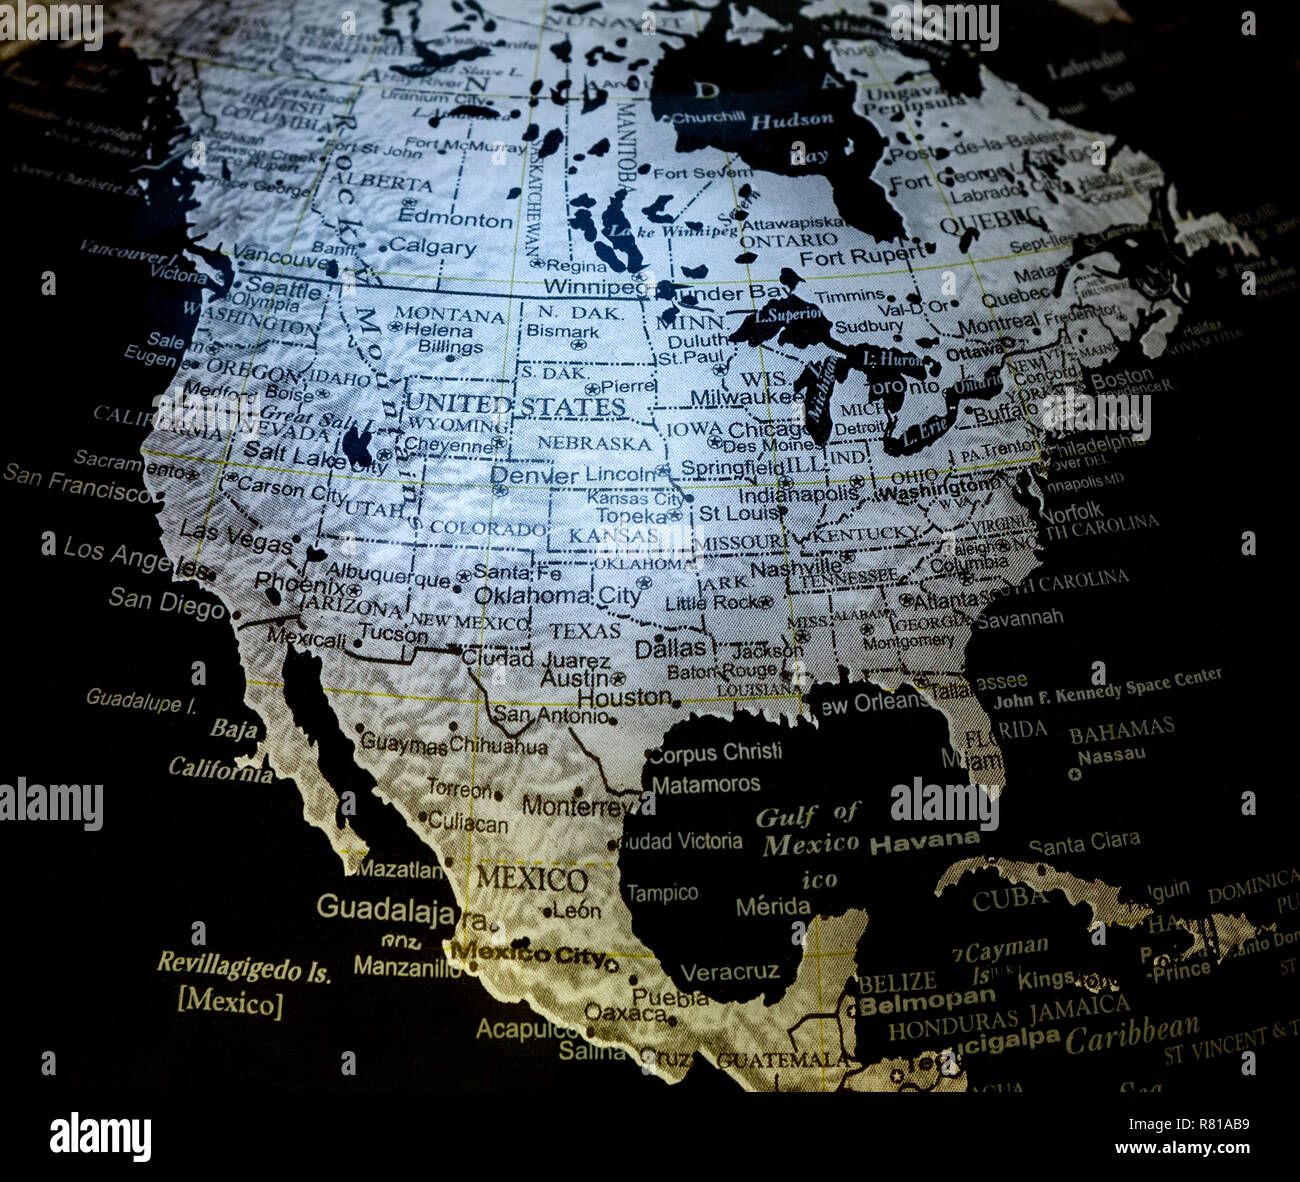 Map Of The World Globe View.Close Up View Of Silver On Black Background World Globe Map Showing